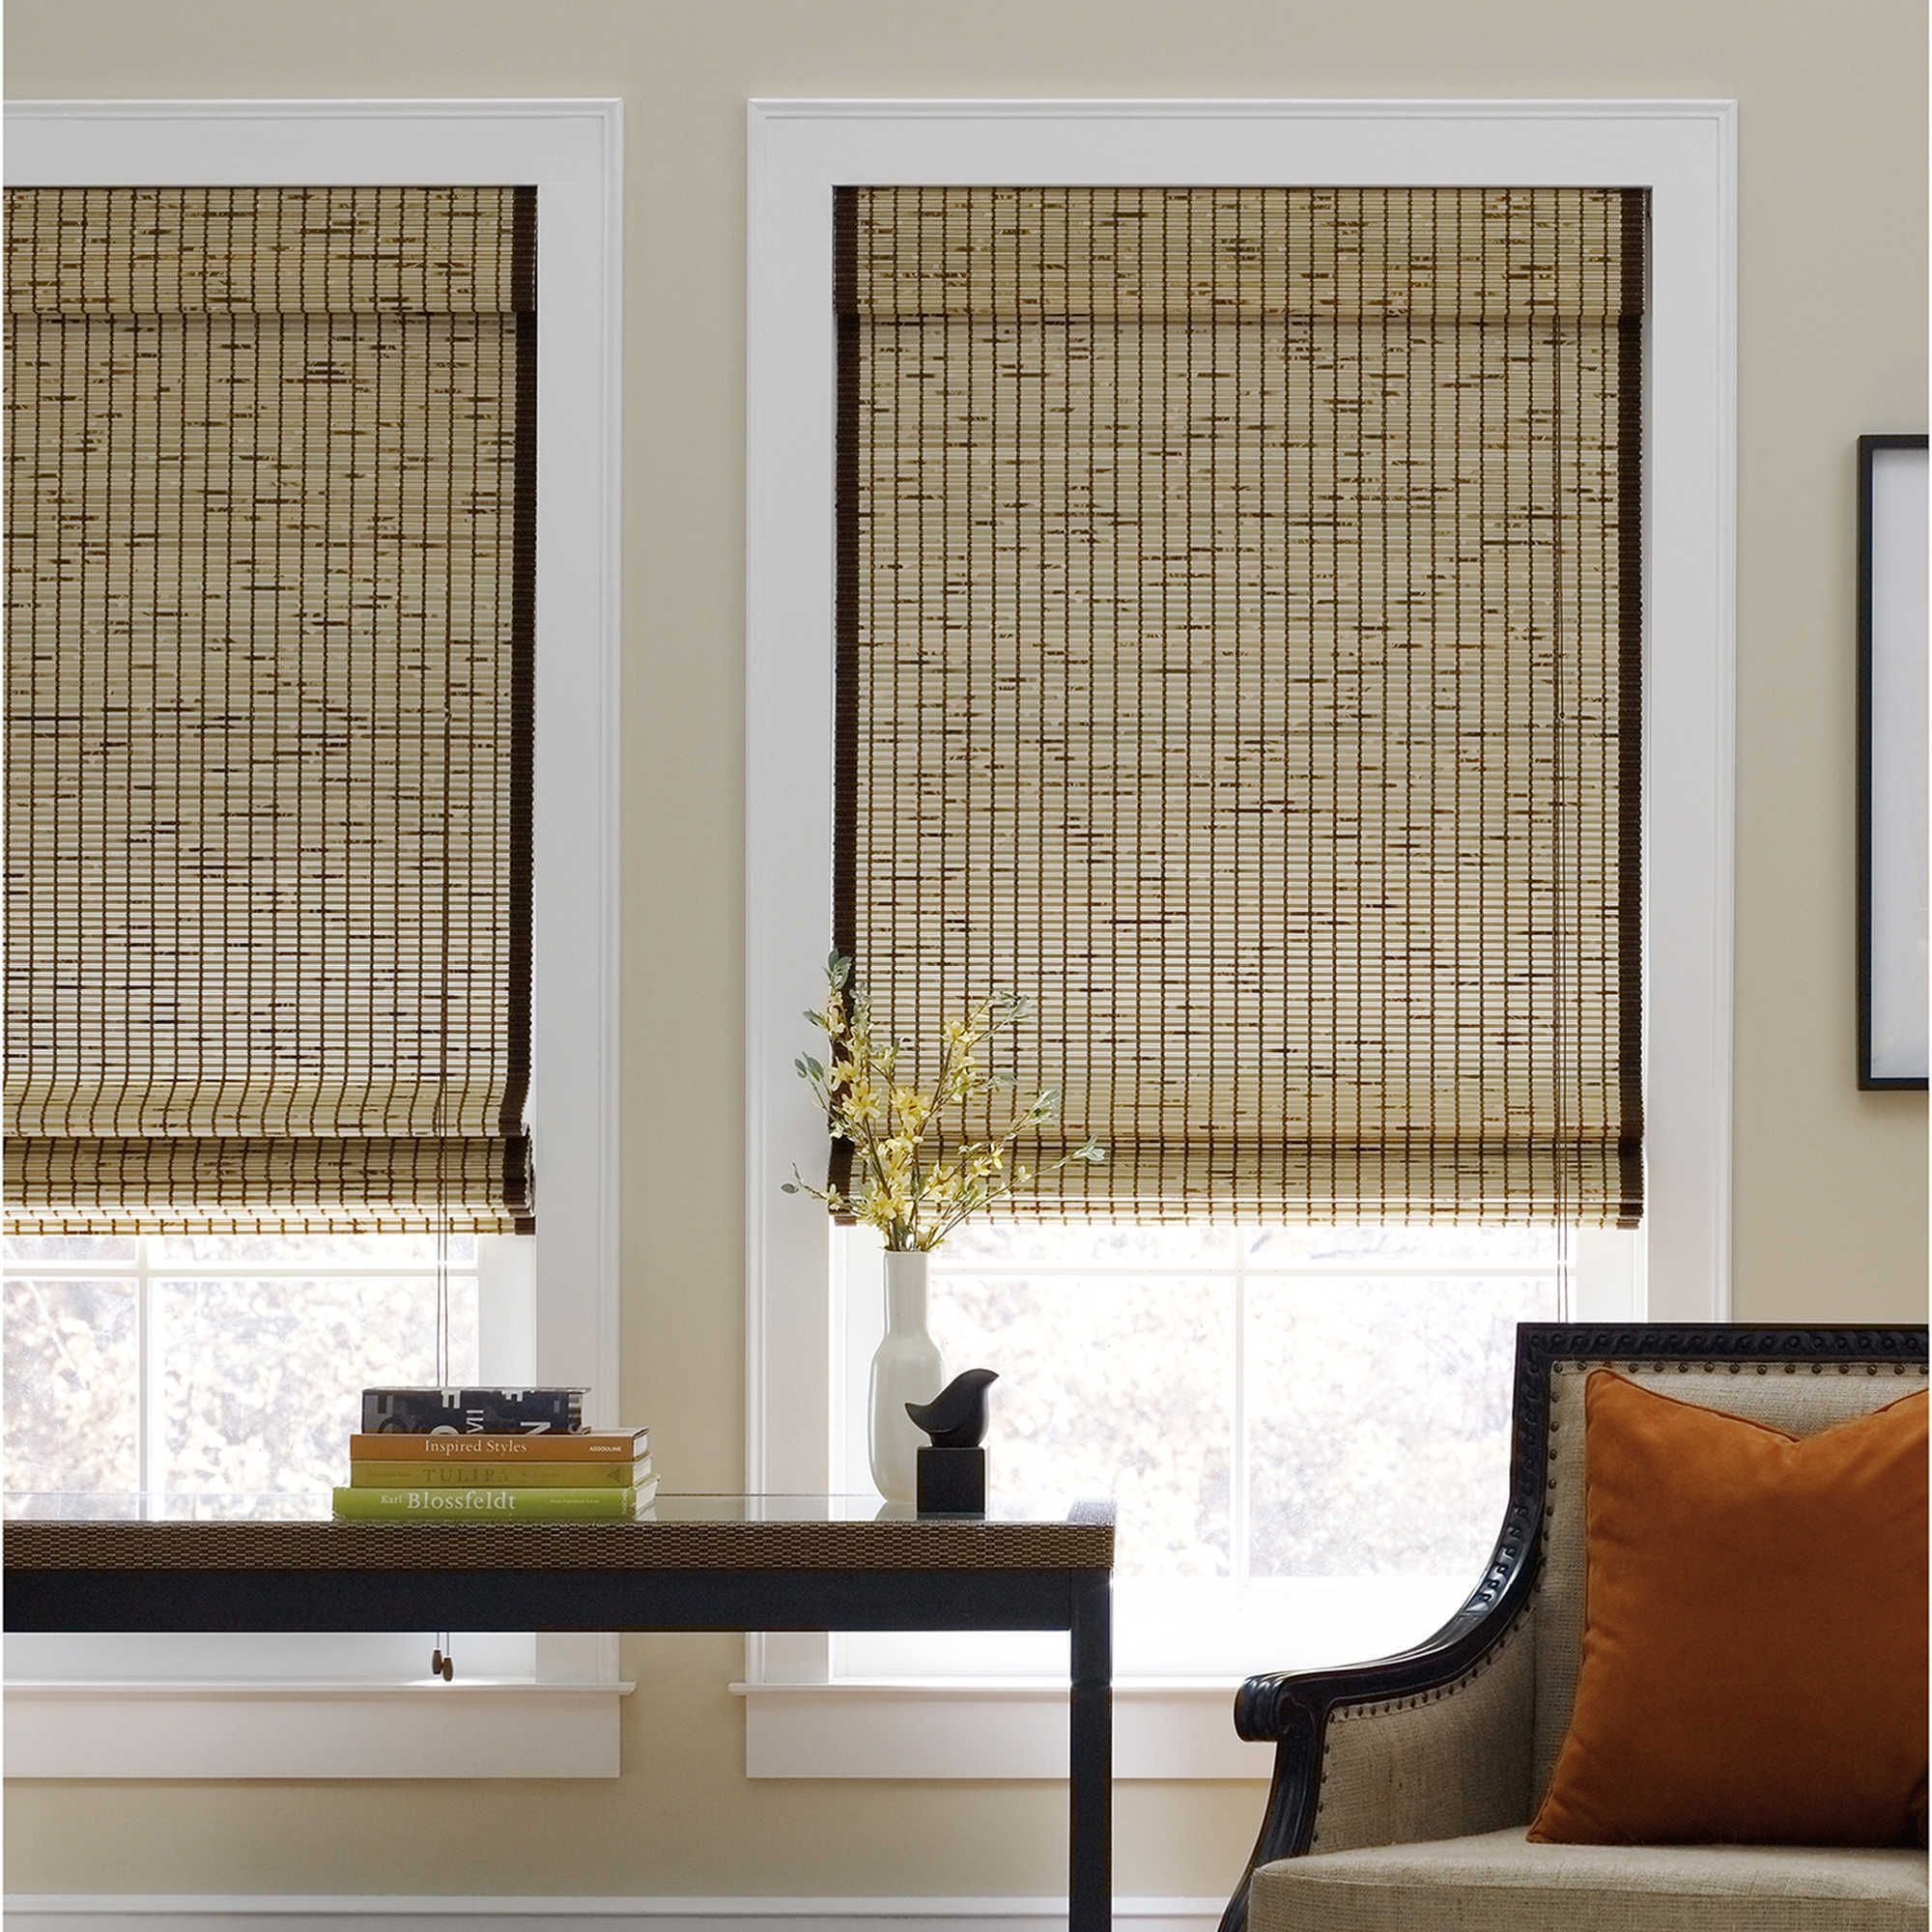 shades fold rhpinterestcom can blinds trends or the ideas border pinterest a curtains different shadeuplayroom roman flat cut fabric in fit be to attachment